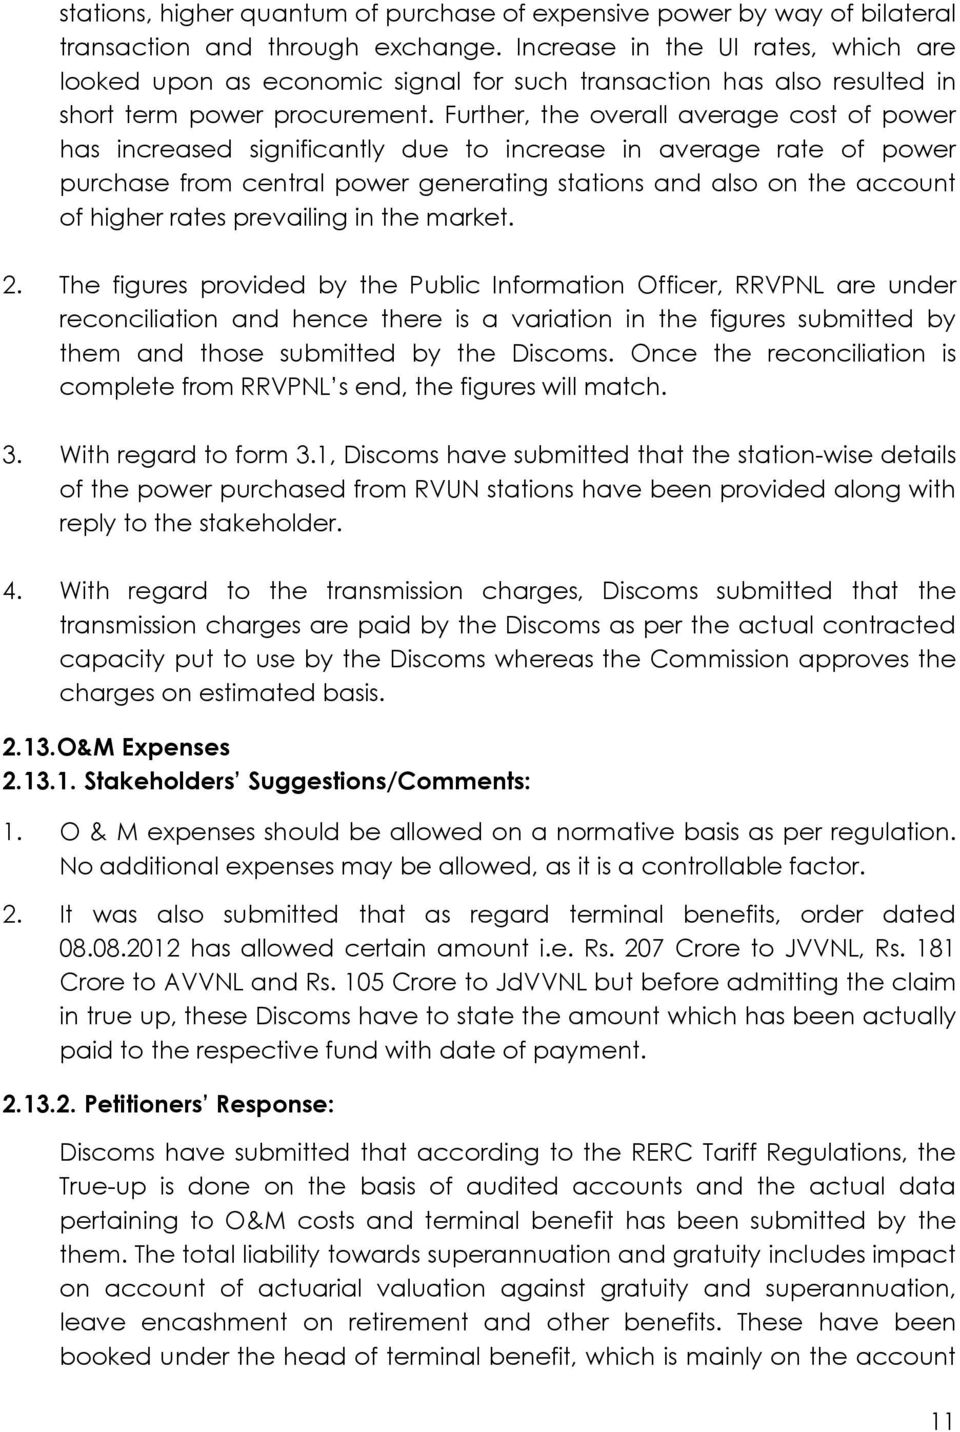 RAJASTHAN ELECTRICITY REGULATORY COMMISSION, JAIPUR Petition